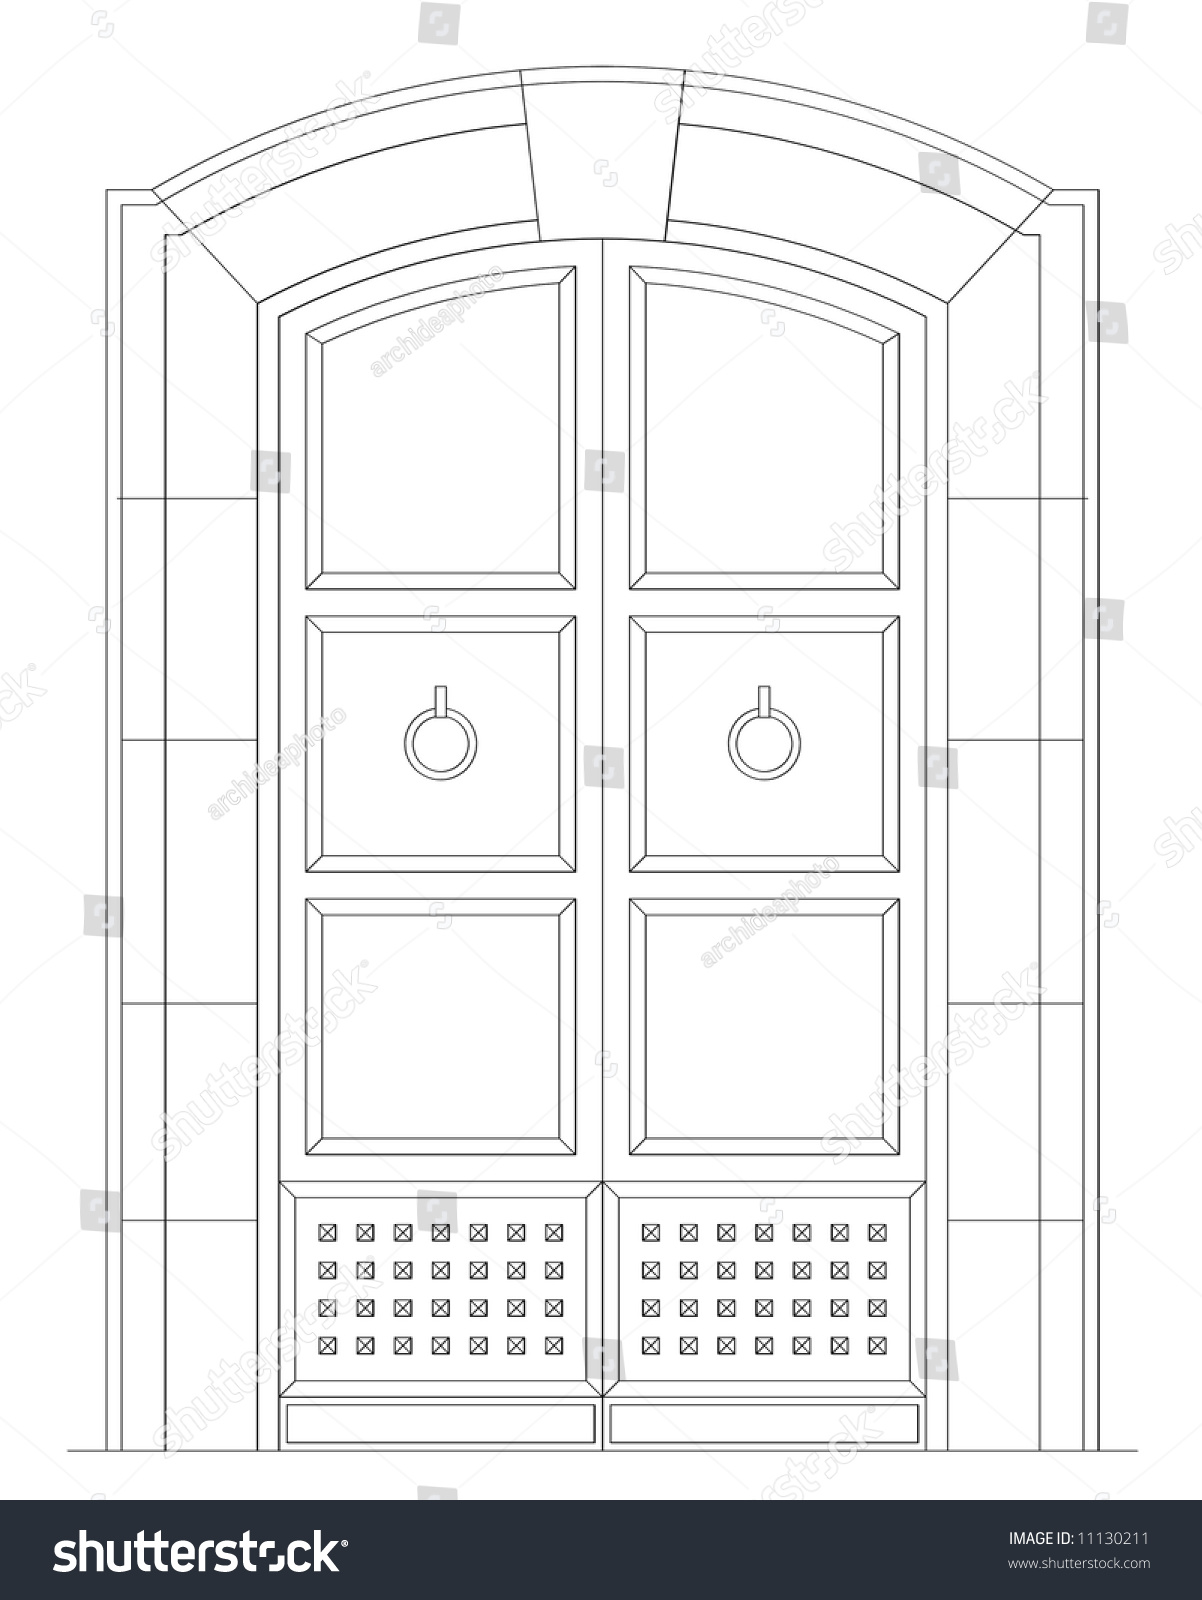 Front Elevation Autocad 2d : Plant elevation ancient front door d stock illustration